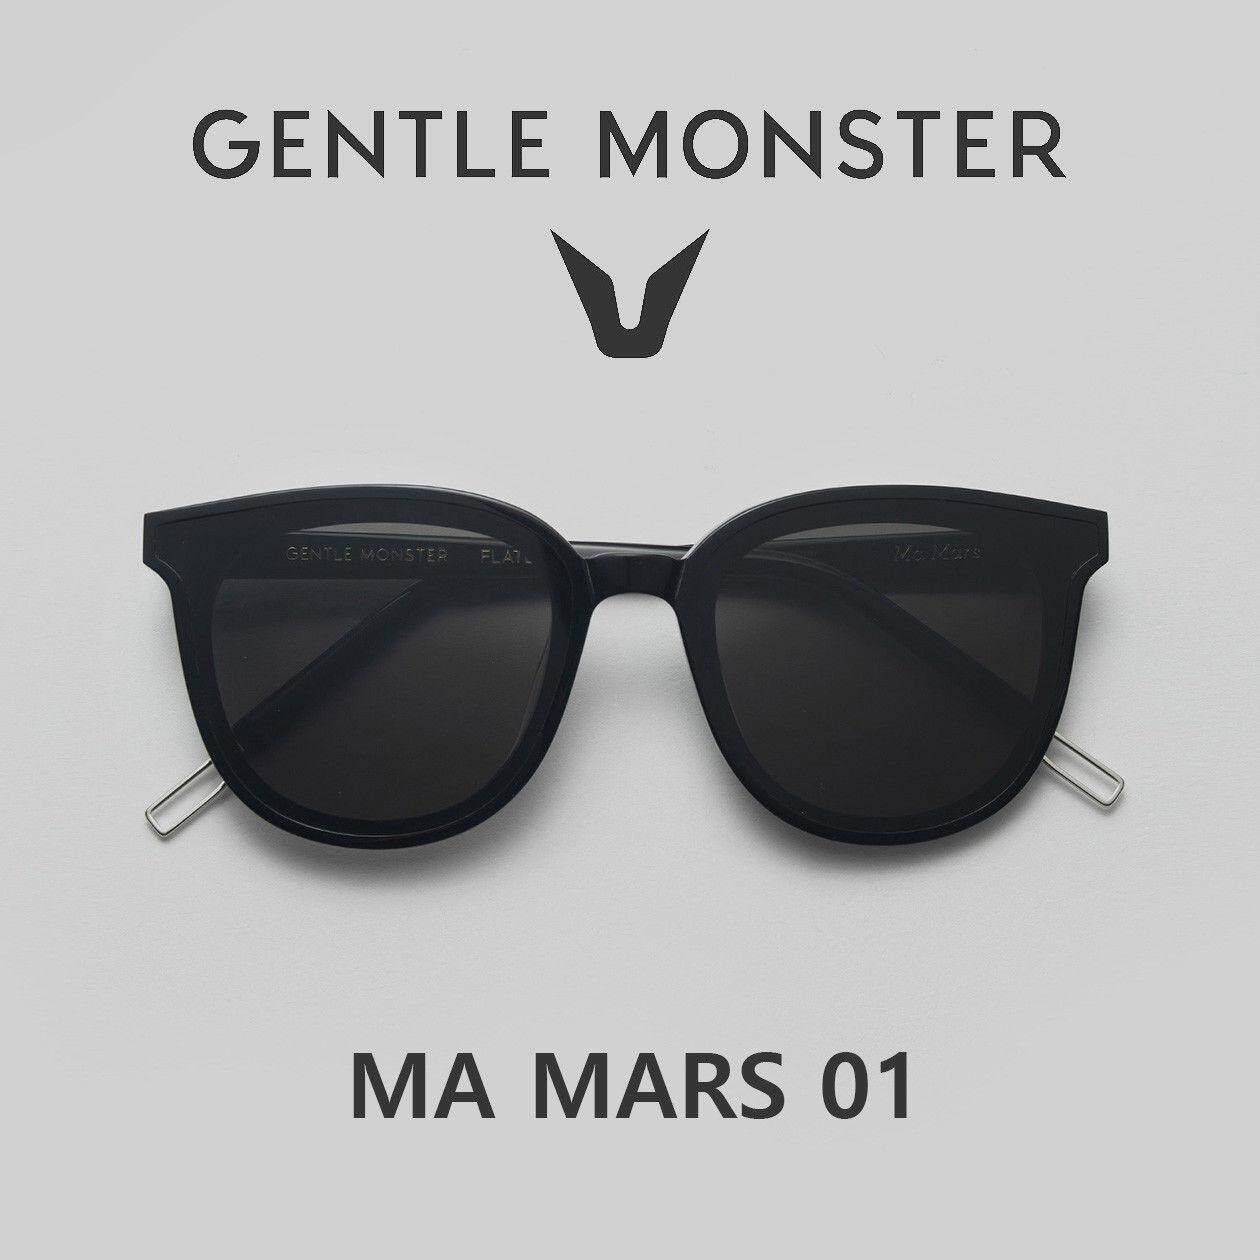 8412a3eee04 Gentle Monster Ma Mars 01 Black Sunglasses Korea Sunglass eyeglasses lens  glasses Malaysia